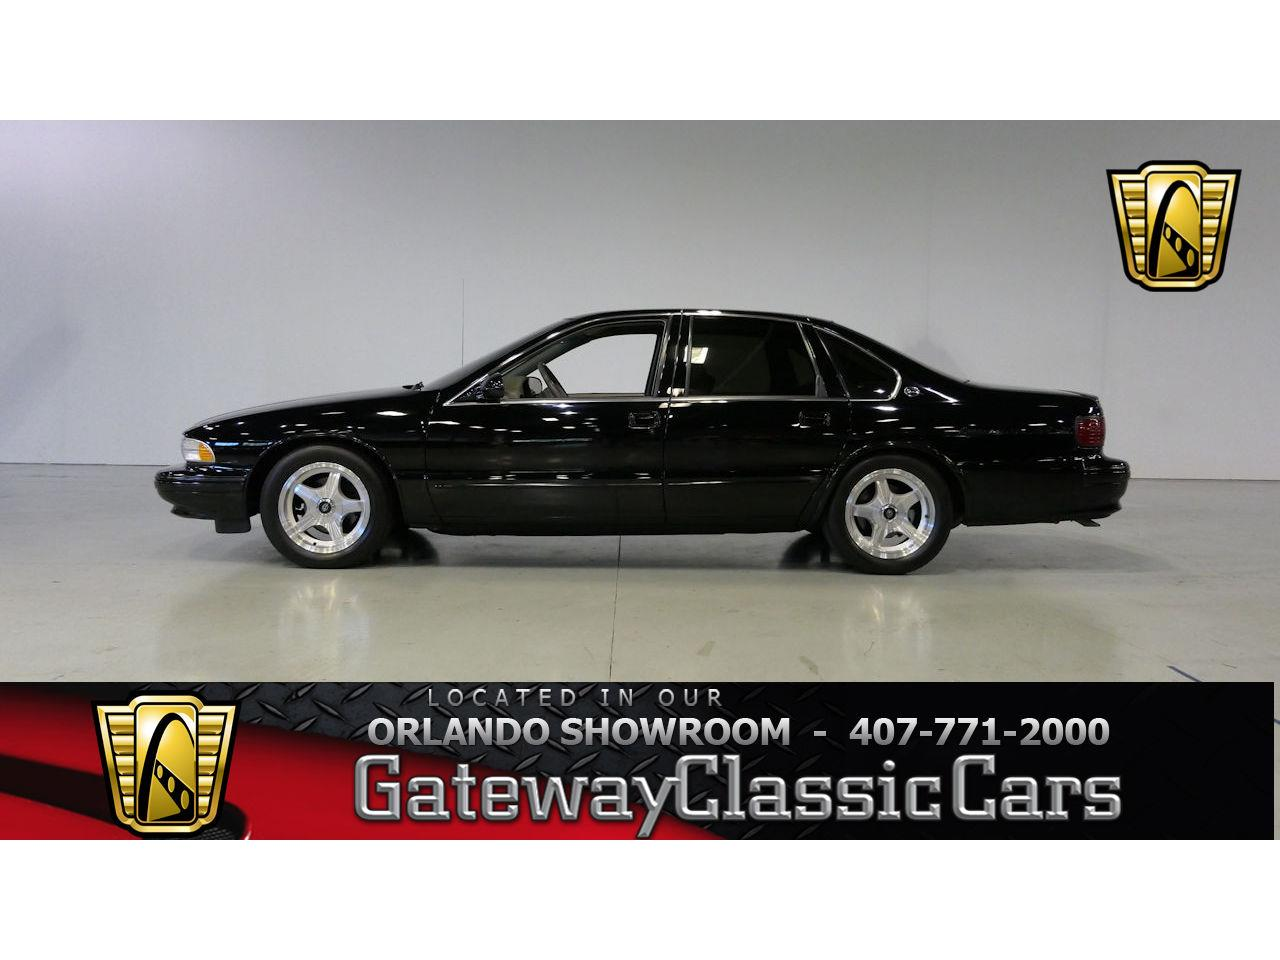 For Sale: 1996 Chevrolet Caprice in Lake Mary, Florida